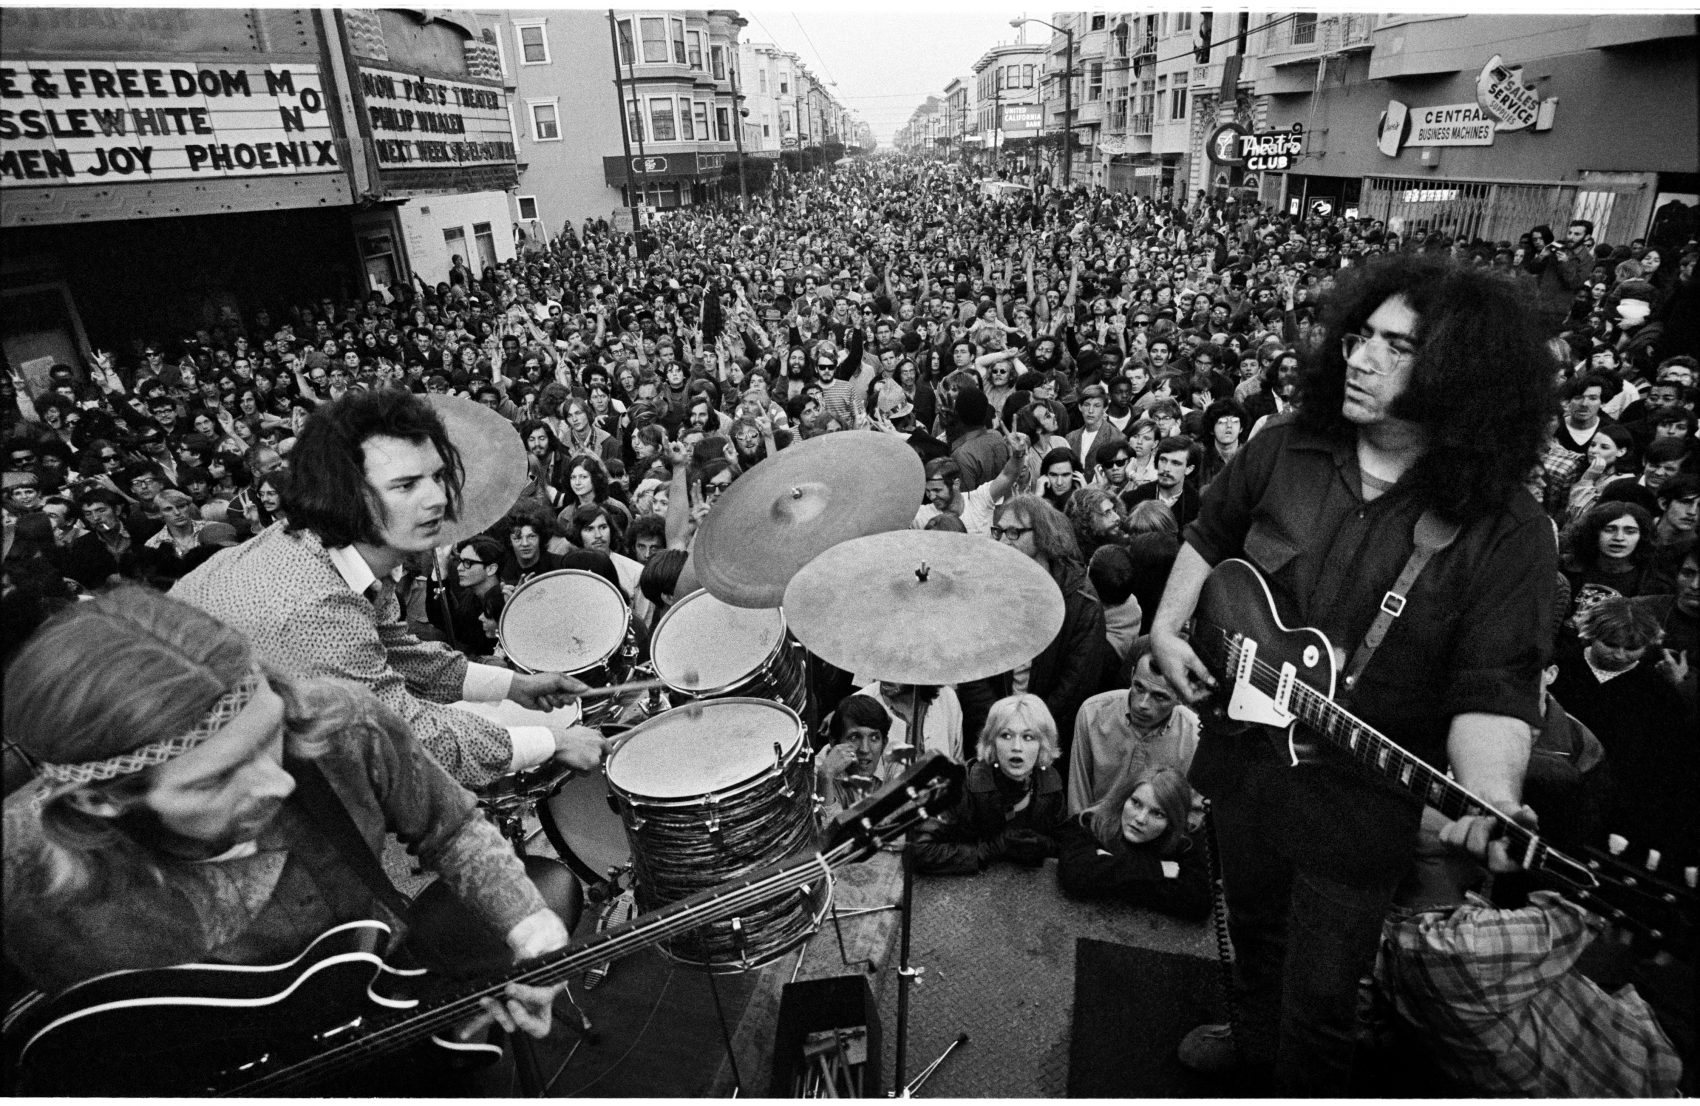 The Grateful Dead performing on Haight Street March 3, 1968. Left to right: Phil Lesh, Bill Kreutzmann and Jerry Garcia. (Courtesy Jim Marshall Photography LLC)